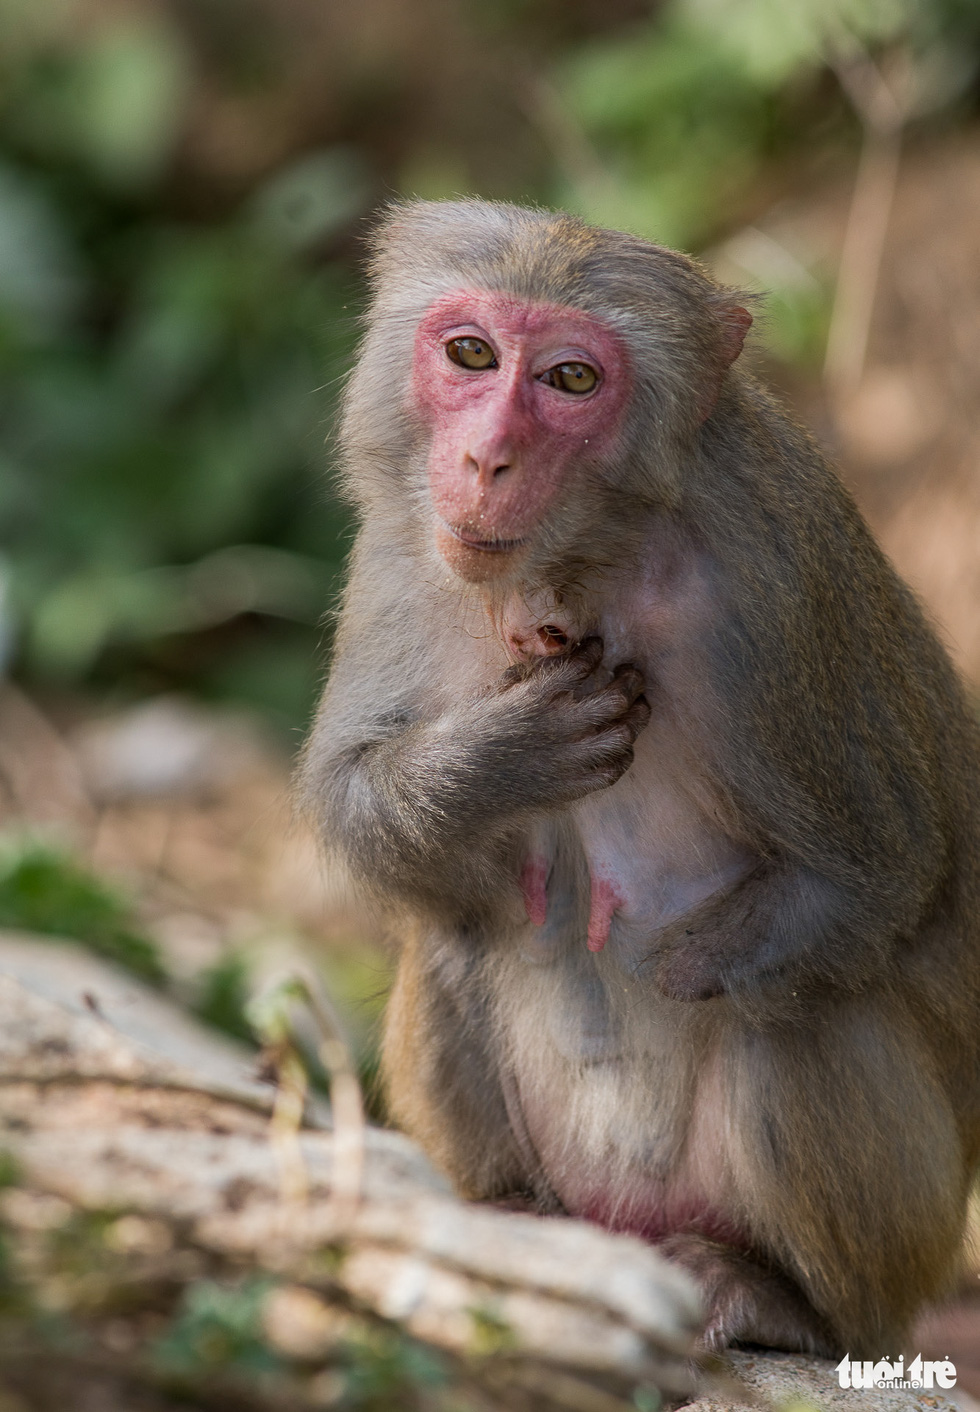 A hand-amputated monkey with a wound on his neck from allegedly being shot.